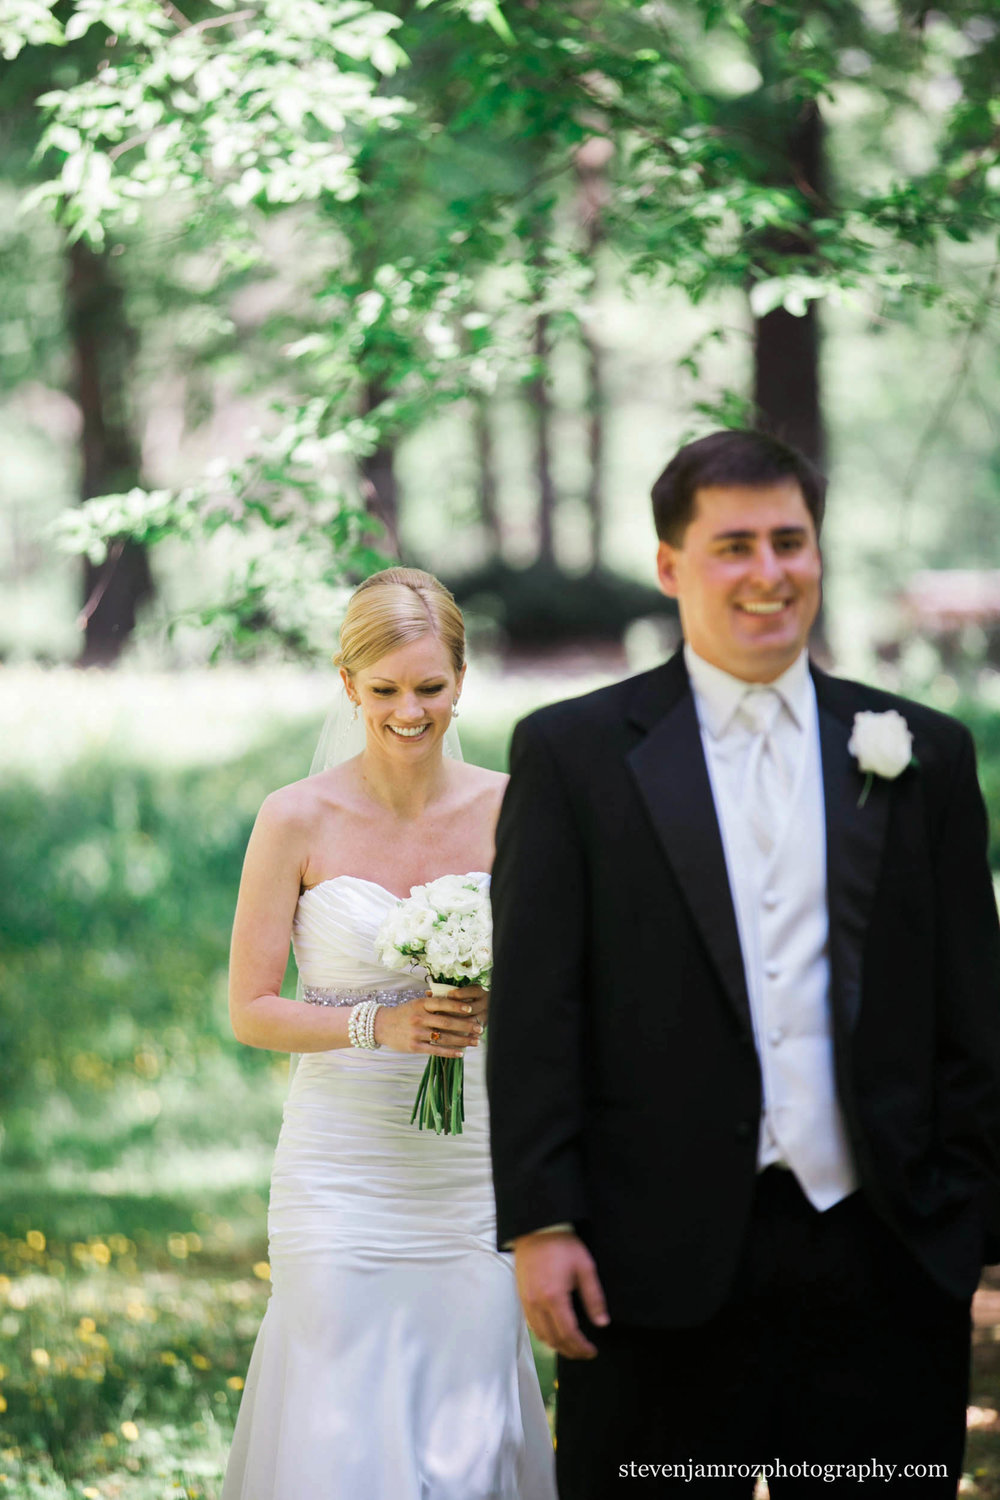 first-look-photo-raleigh-wedding-steven-jamroz-photography-0454.jpg